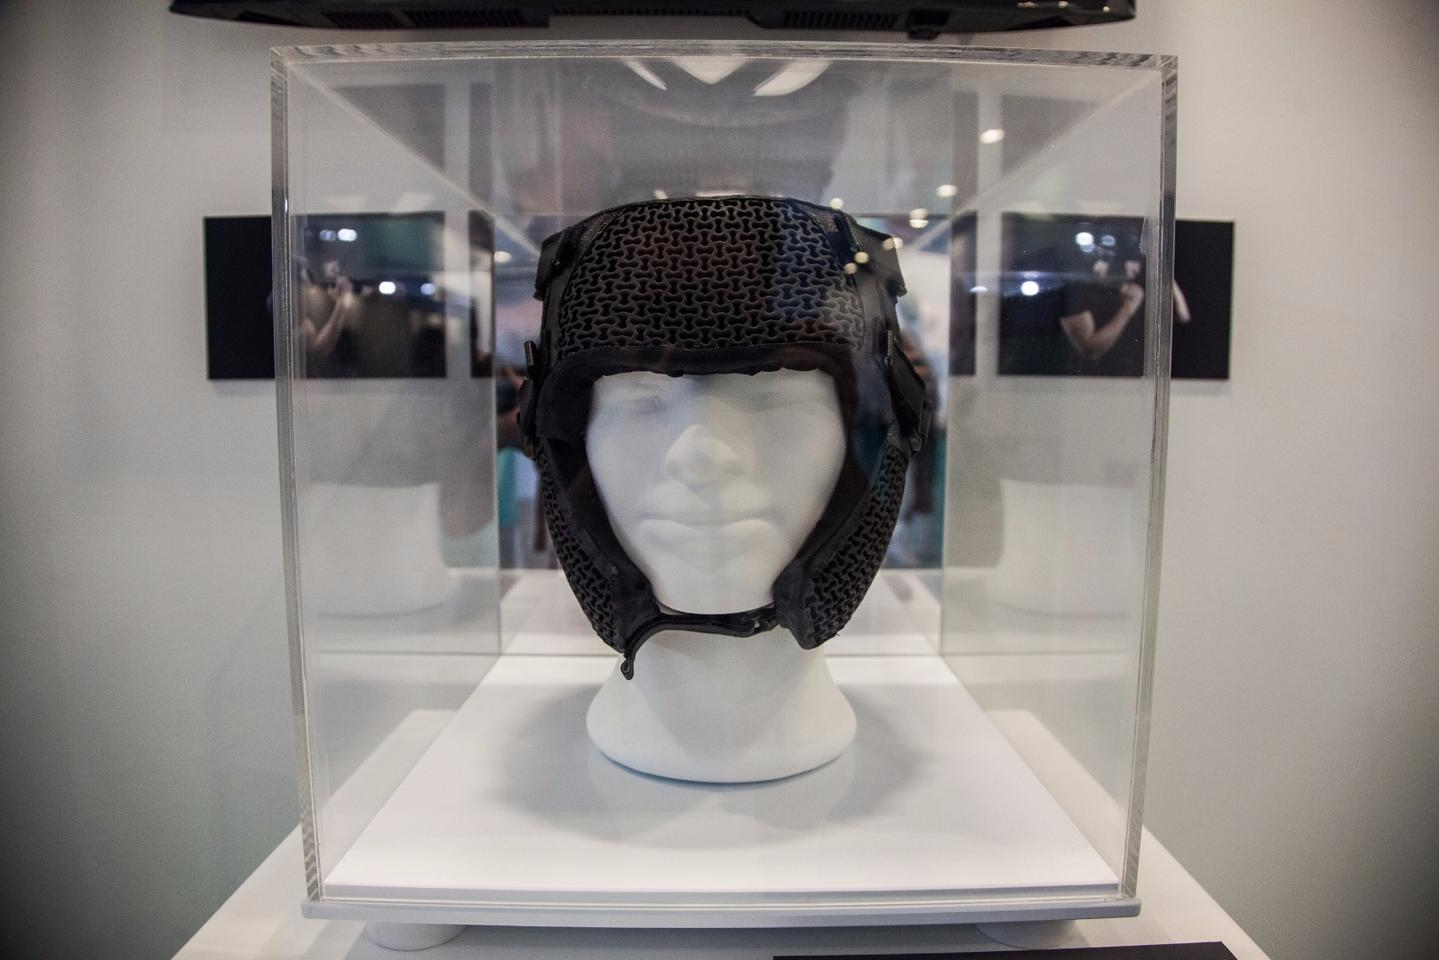 Global Grad Show:Headgear with responsive material that redirects impacts to better protect agains concussions. By He Chang Teo, from National University of Singapore